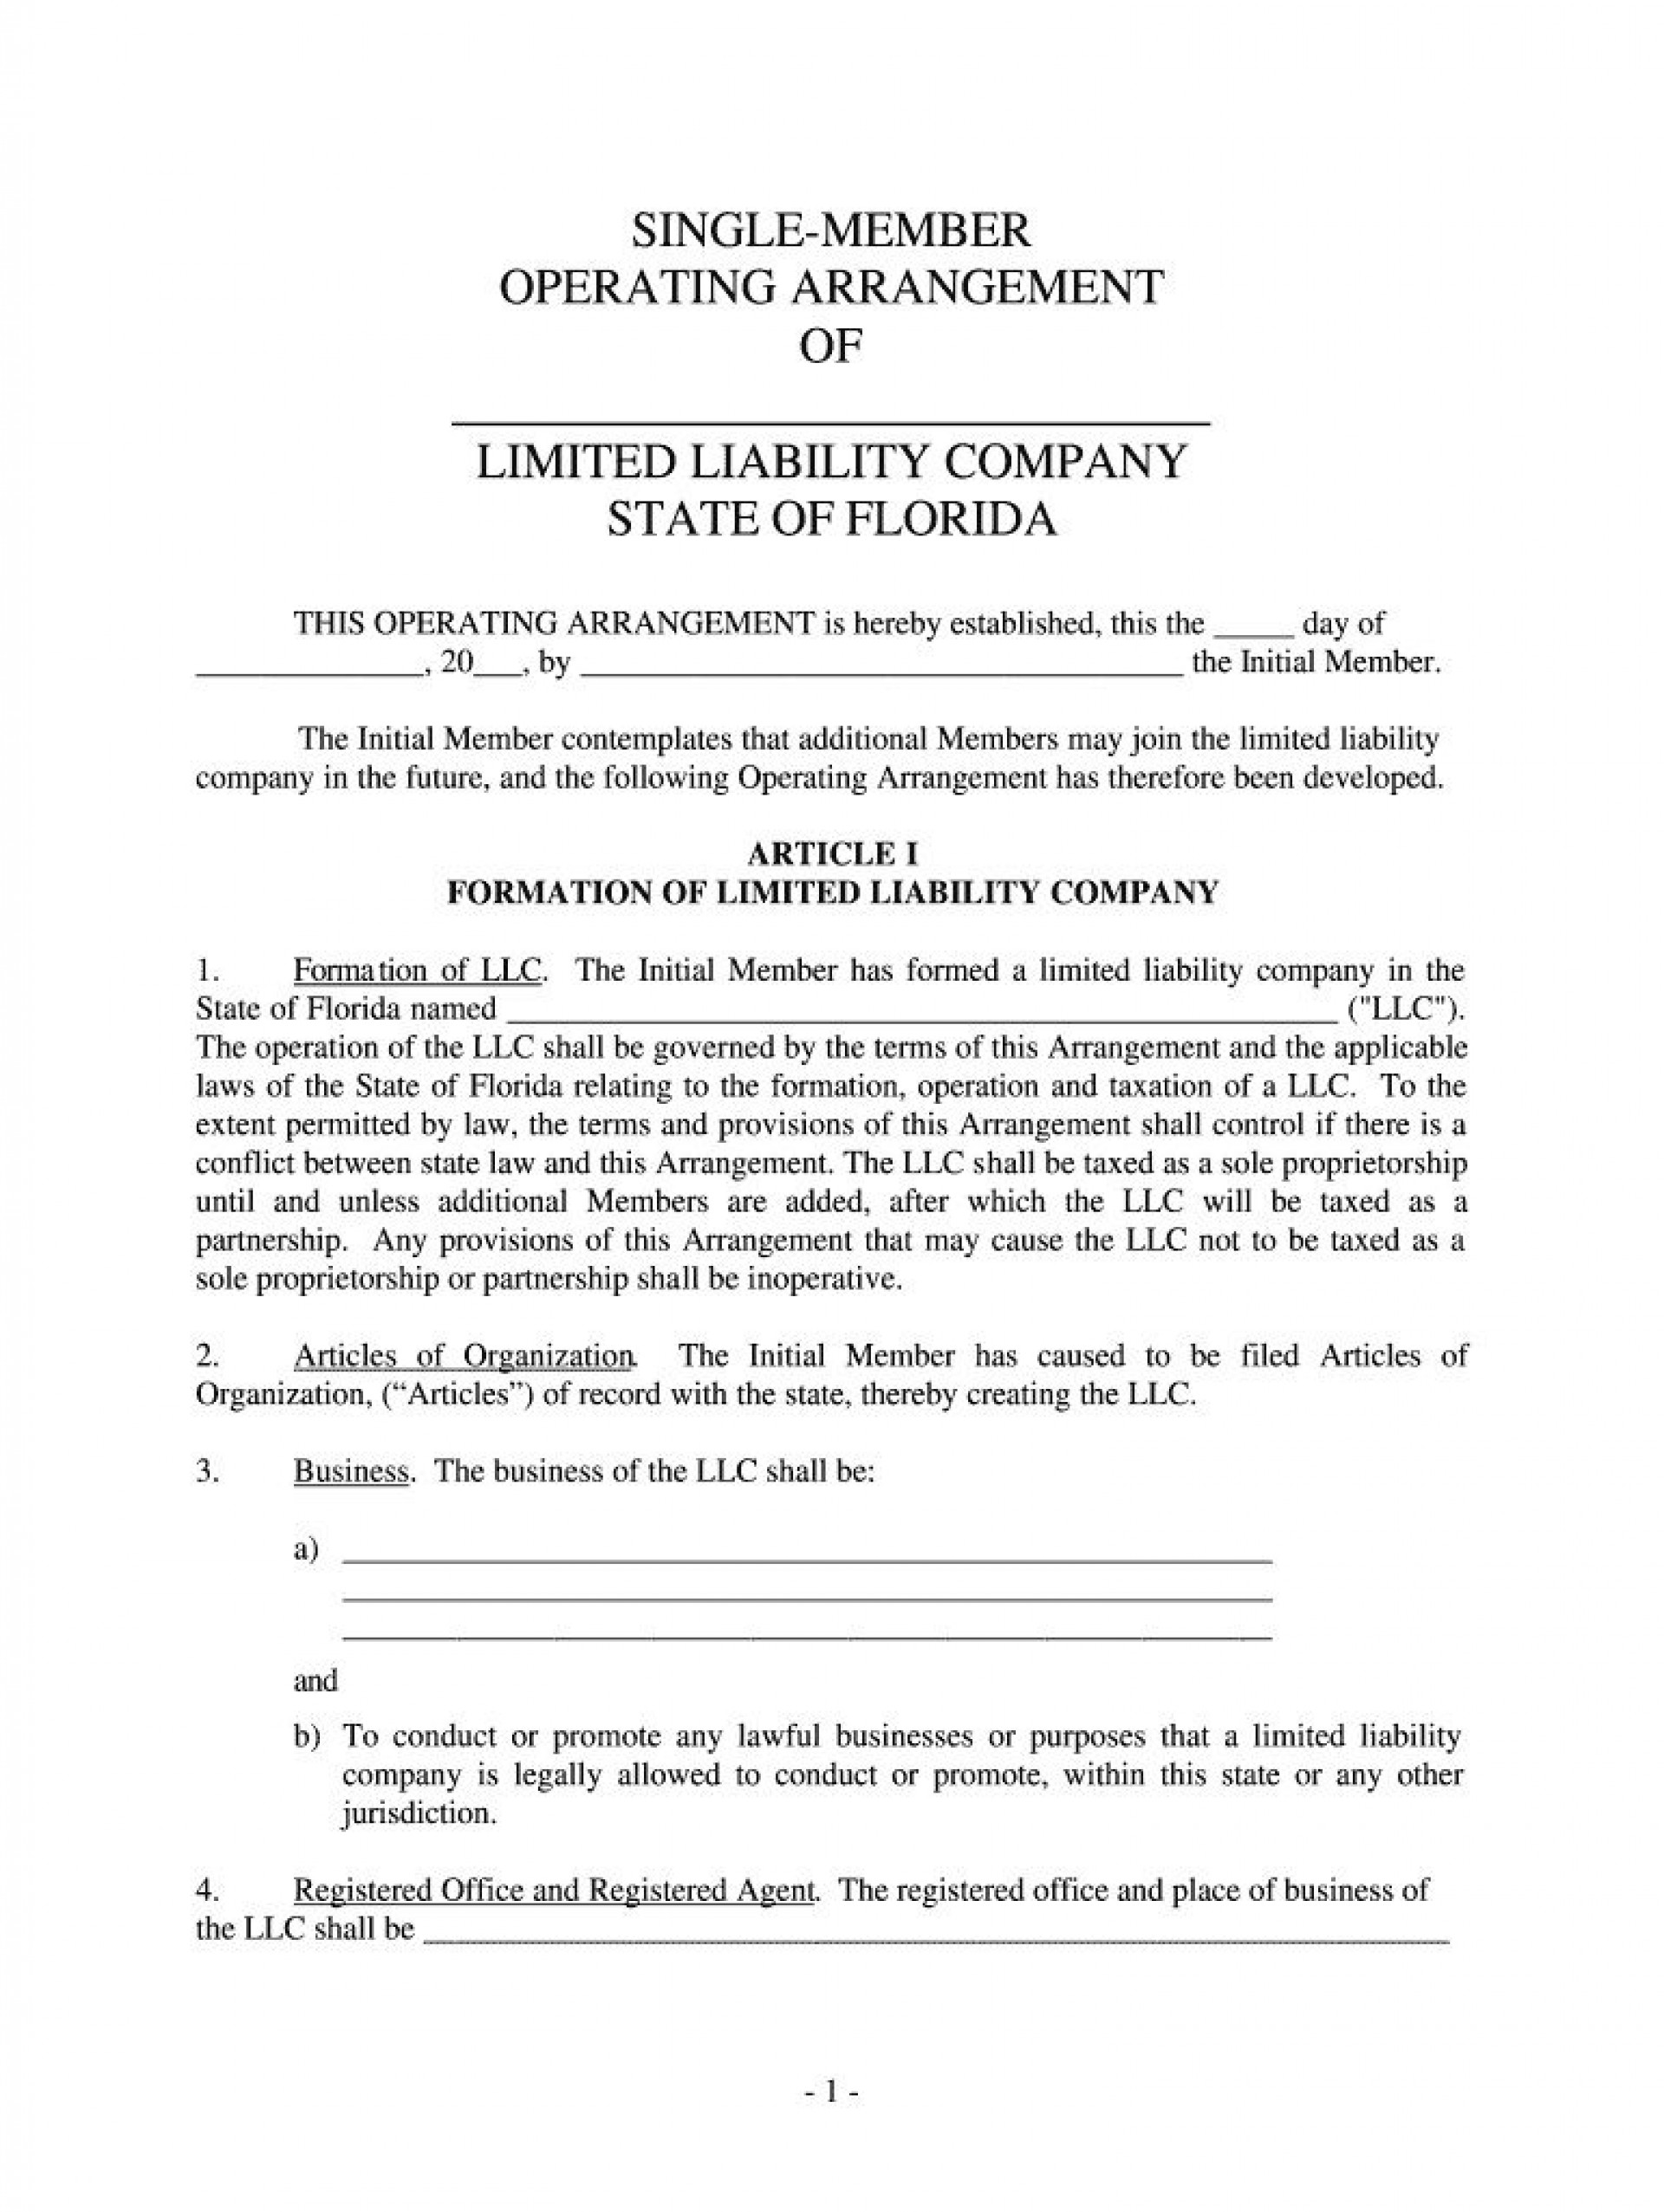 004 Remarkable Llc Operating Agreement Template Free Highest Clarity  Single Member Pdf Simple Download1920